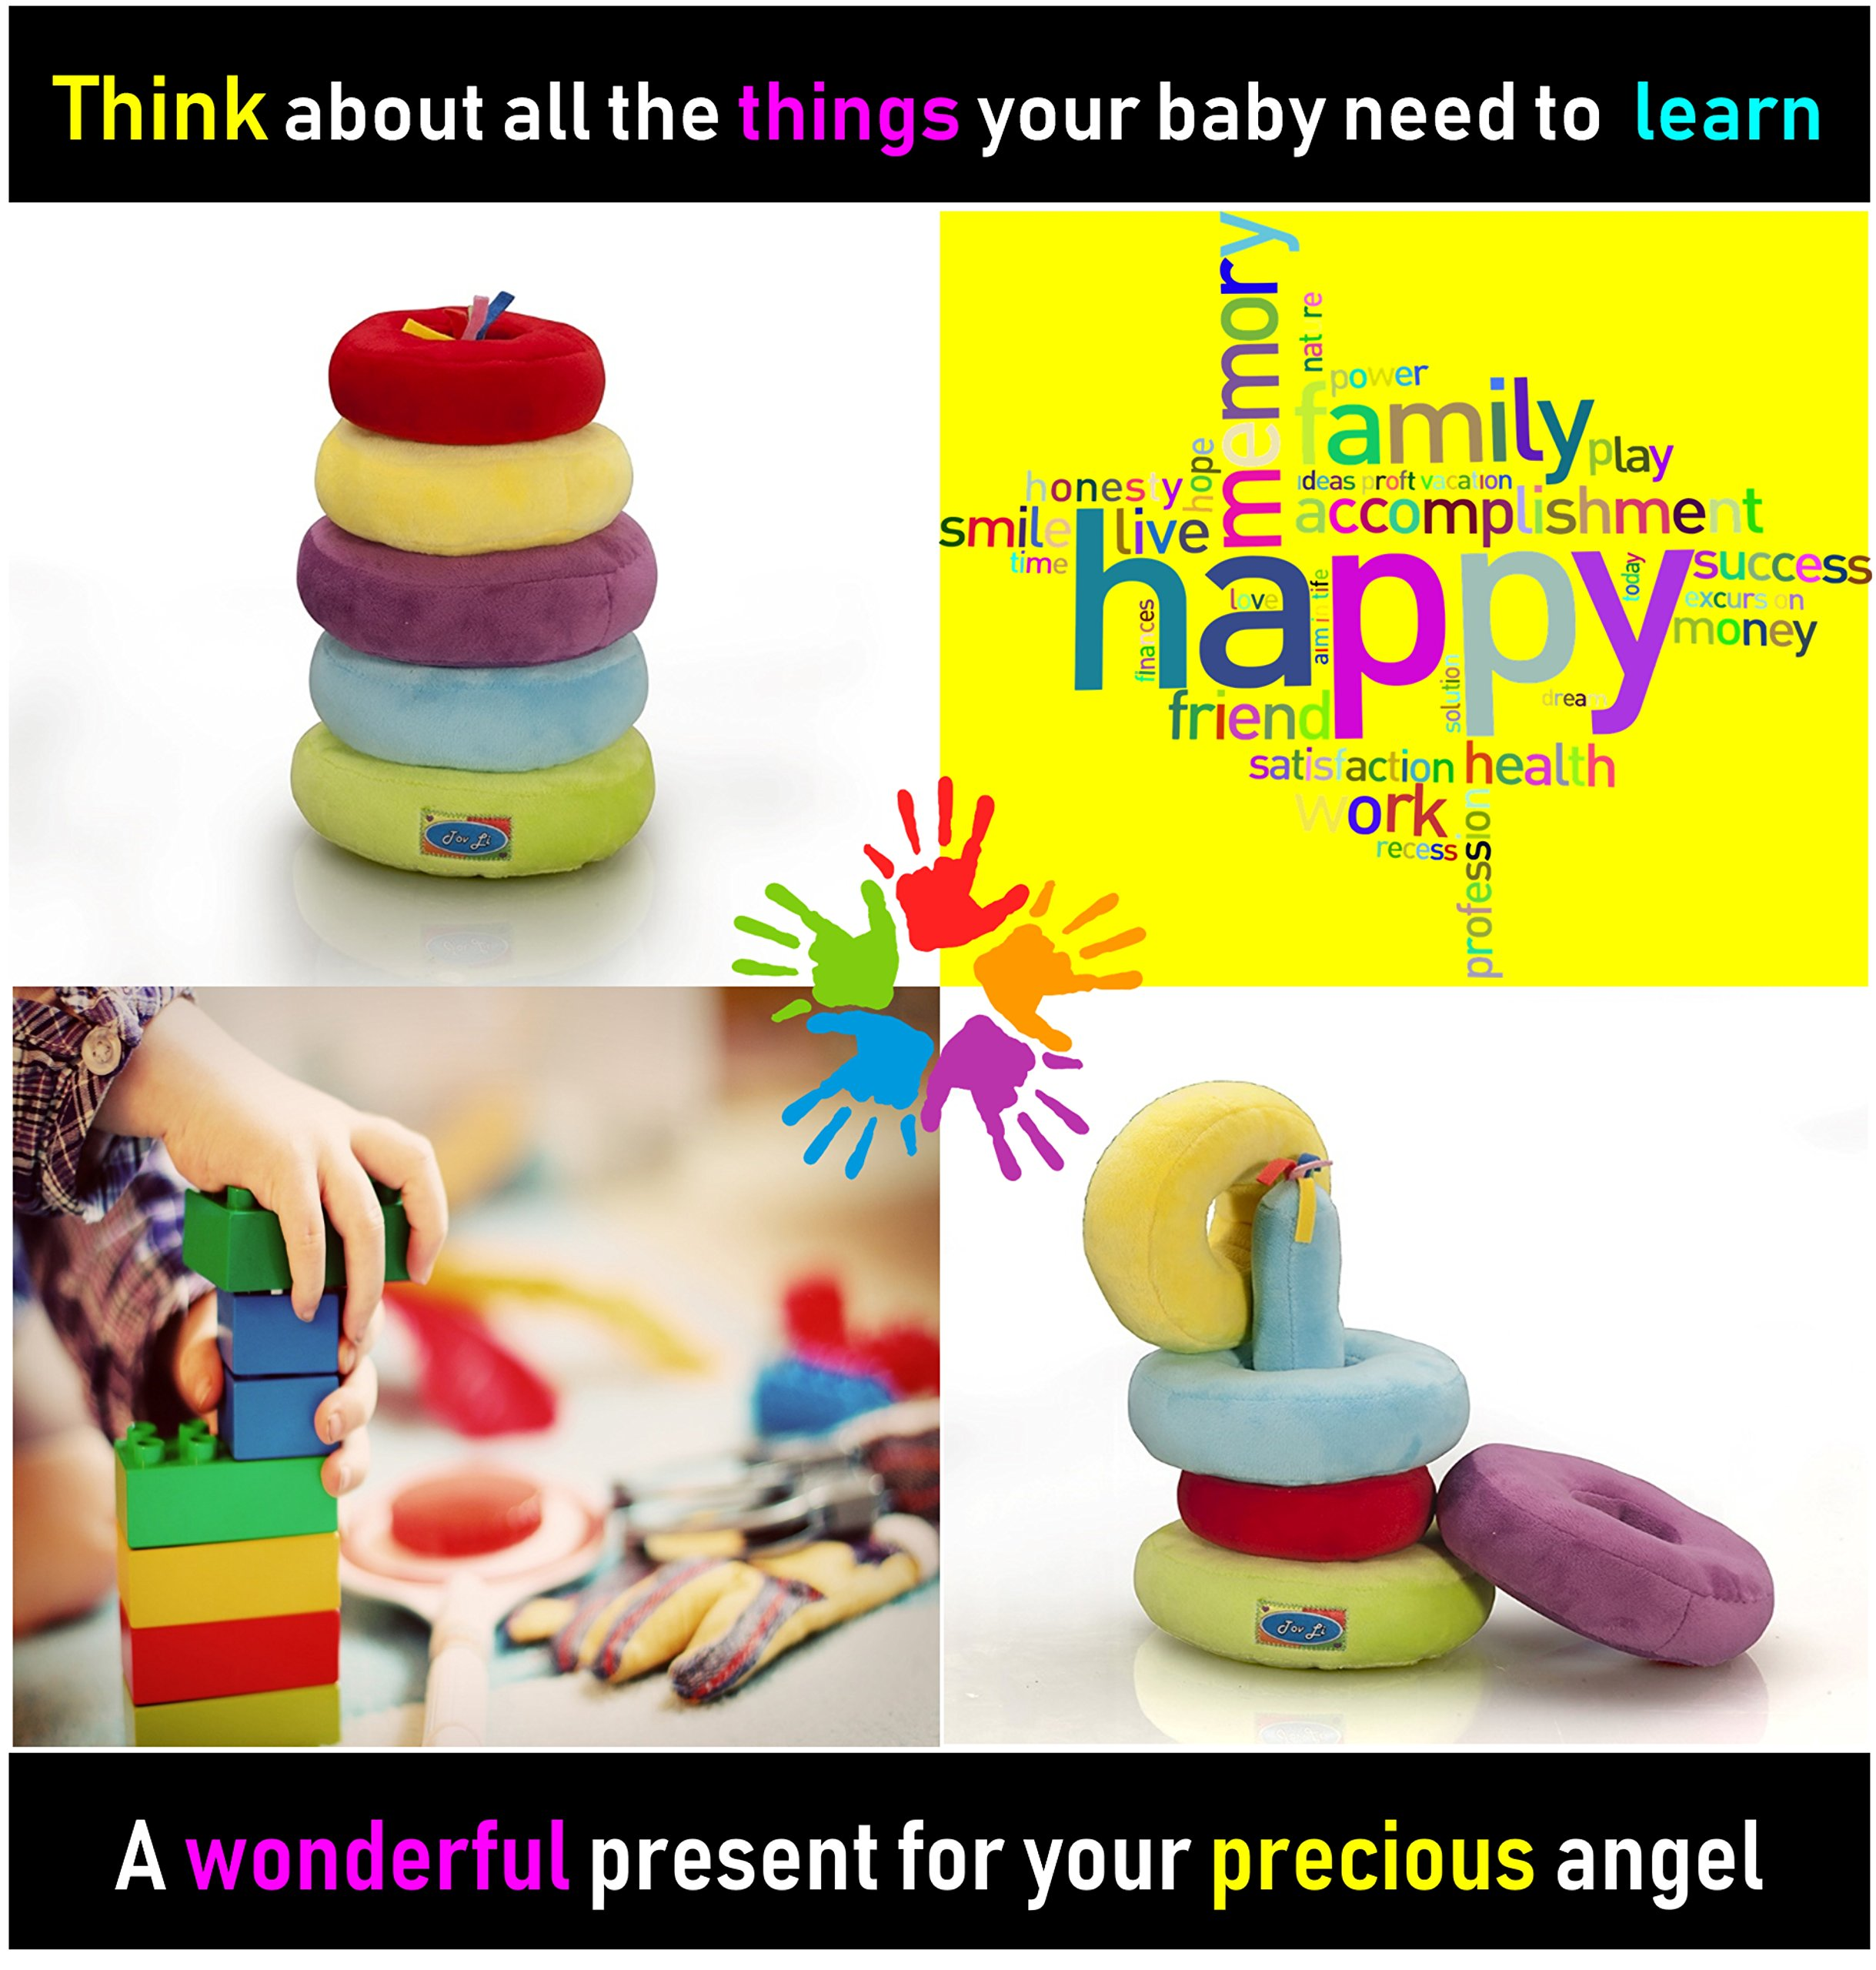 Stacking Rings Toys - Soft Stuffed Plush Educational Game for Baby Infant Toddler Kids and Young Children , Safe Colorful Shape Sorting Stacker Play for Boys and Girls.. The by Tov Li Toys (Image #4)